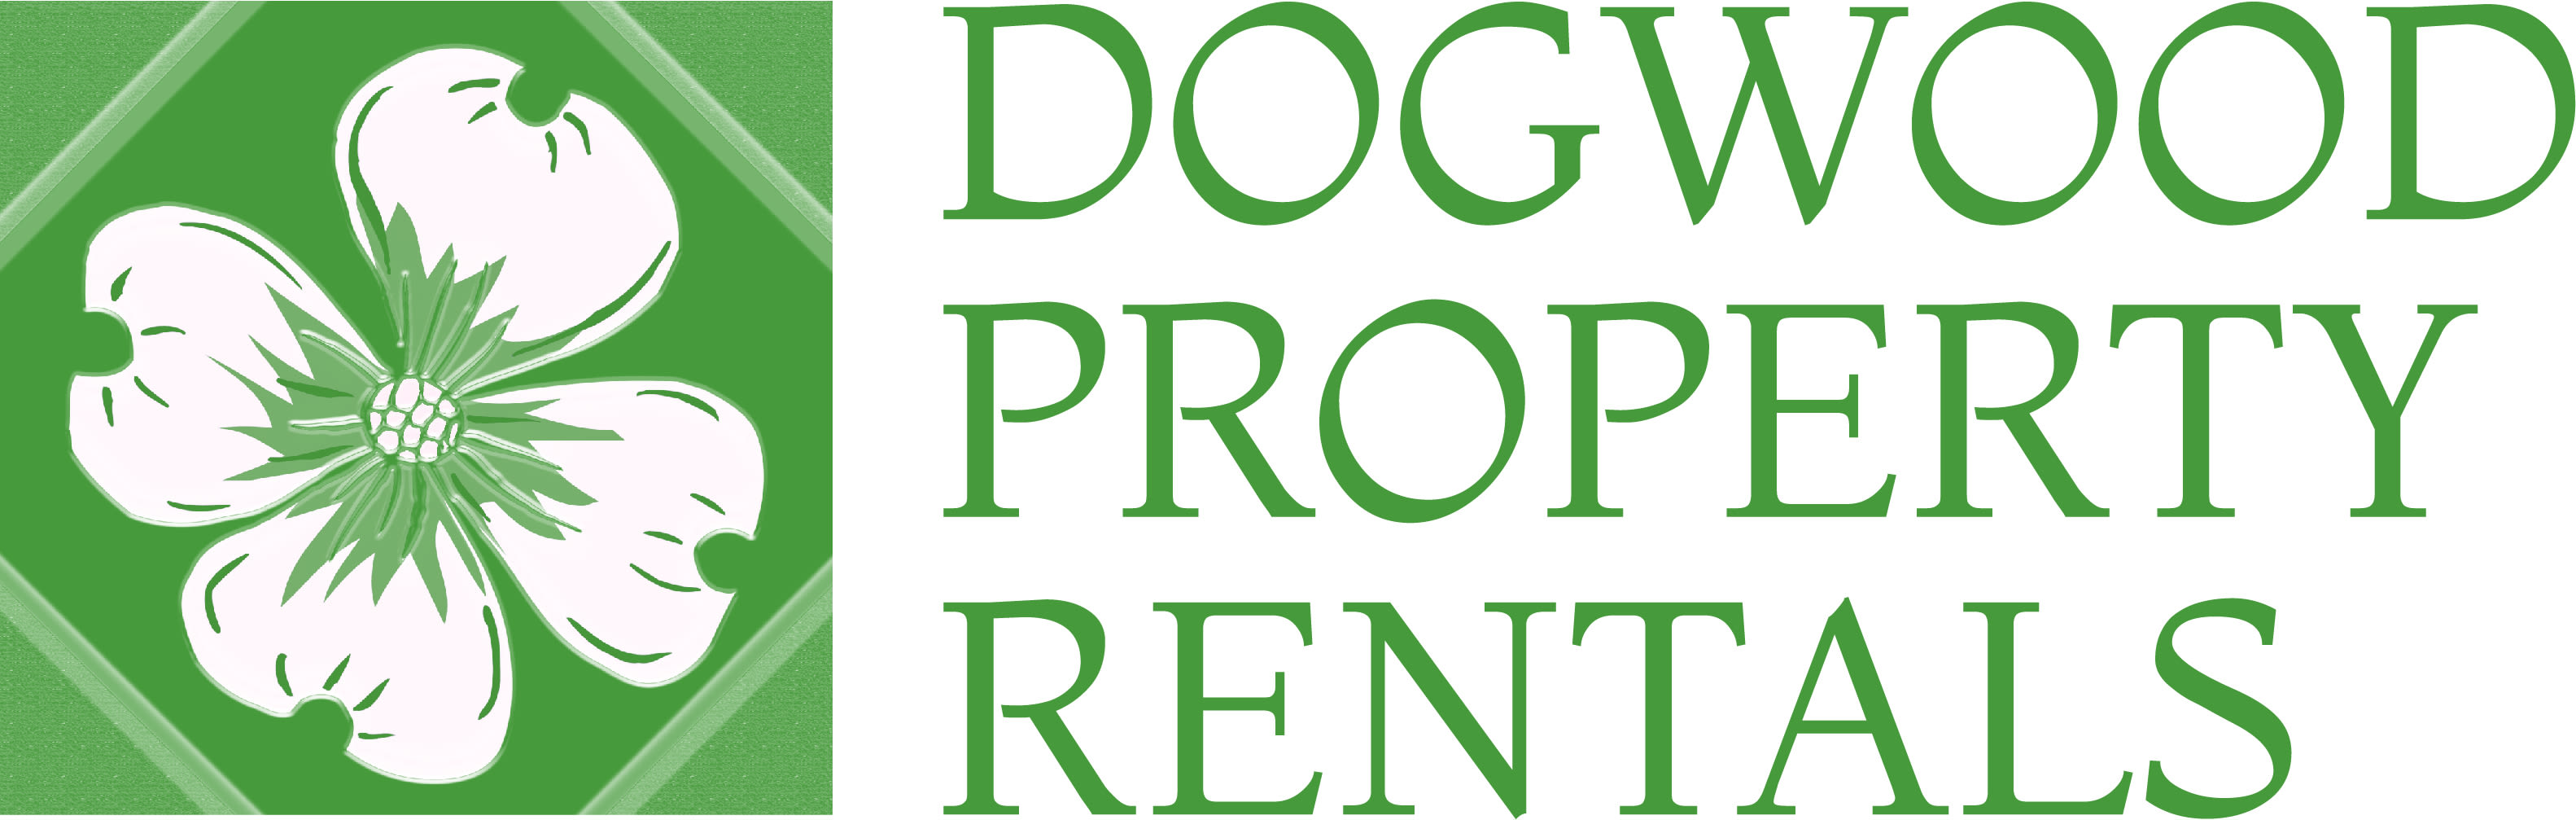 DOGWOOD PROPERTY RENTALS